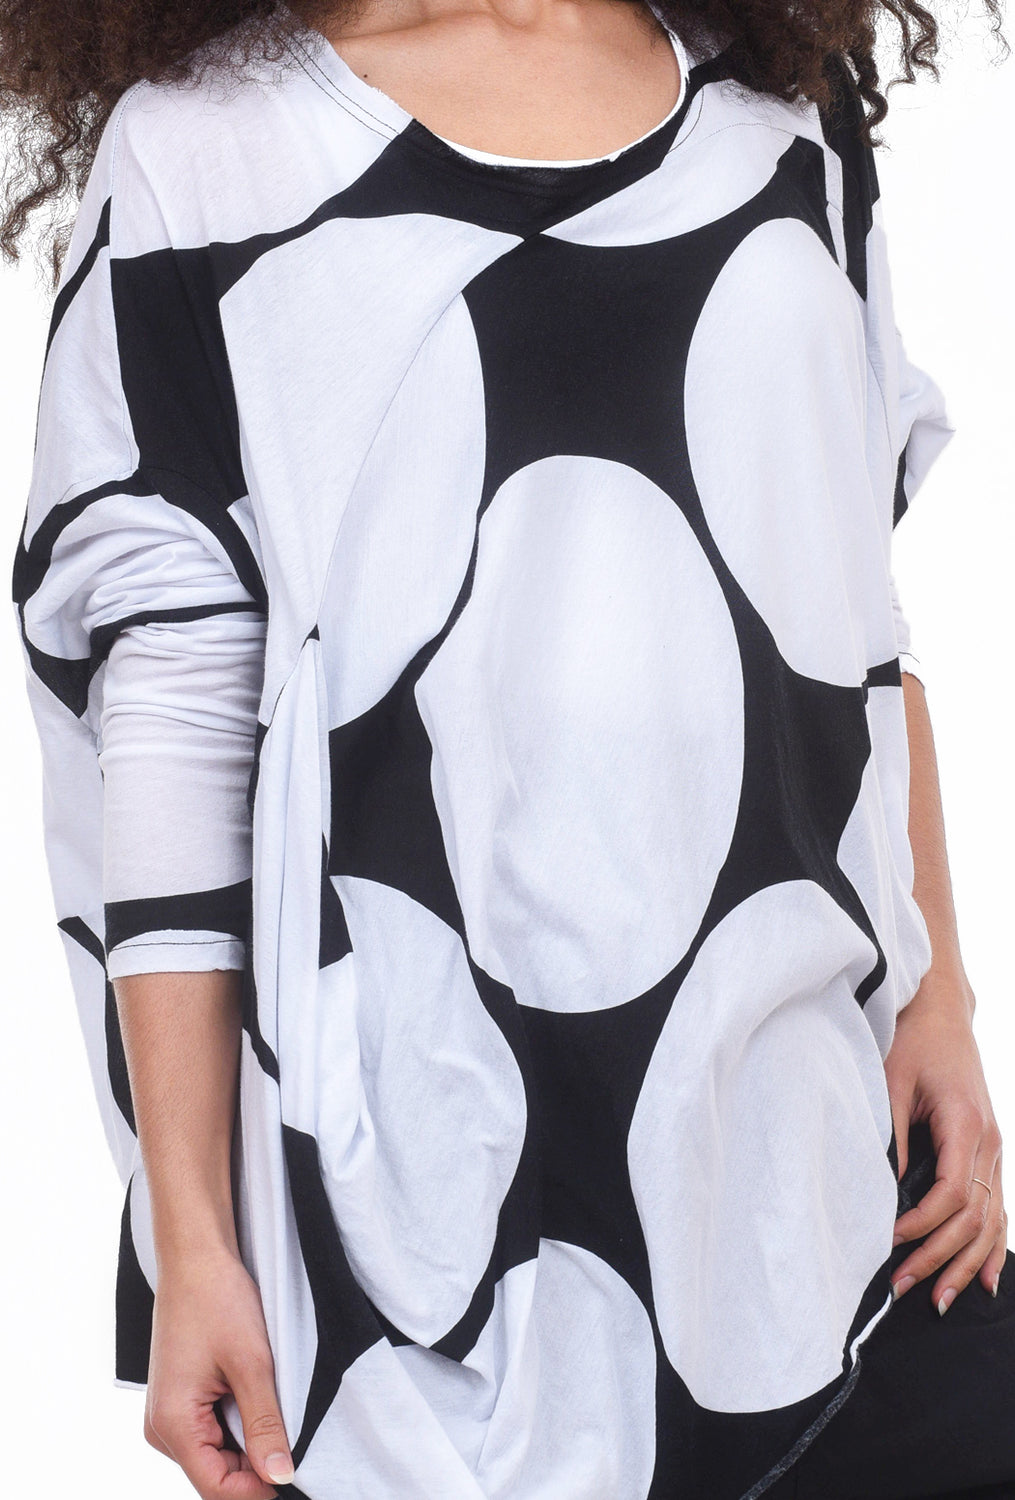 Rundholz Black Label Oversized Dot Tee, White Dot One Size White